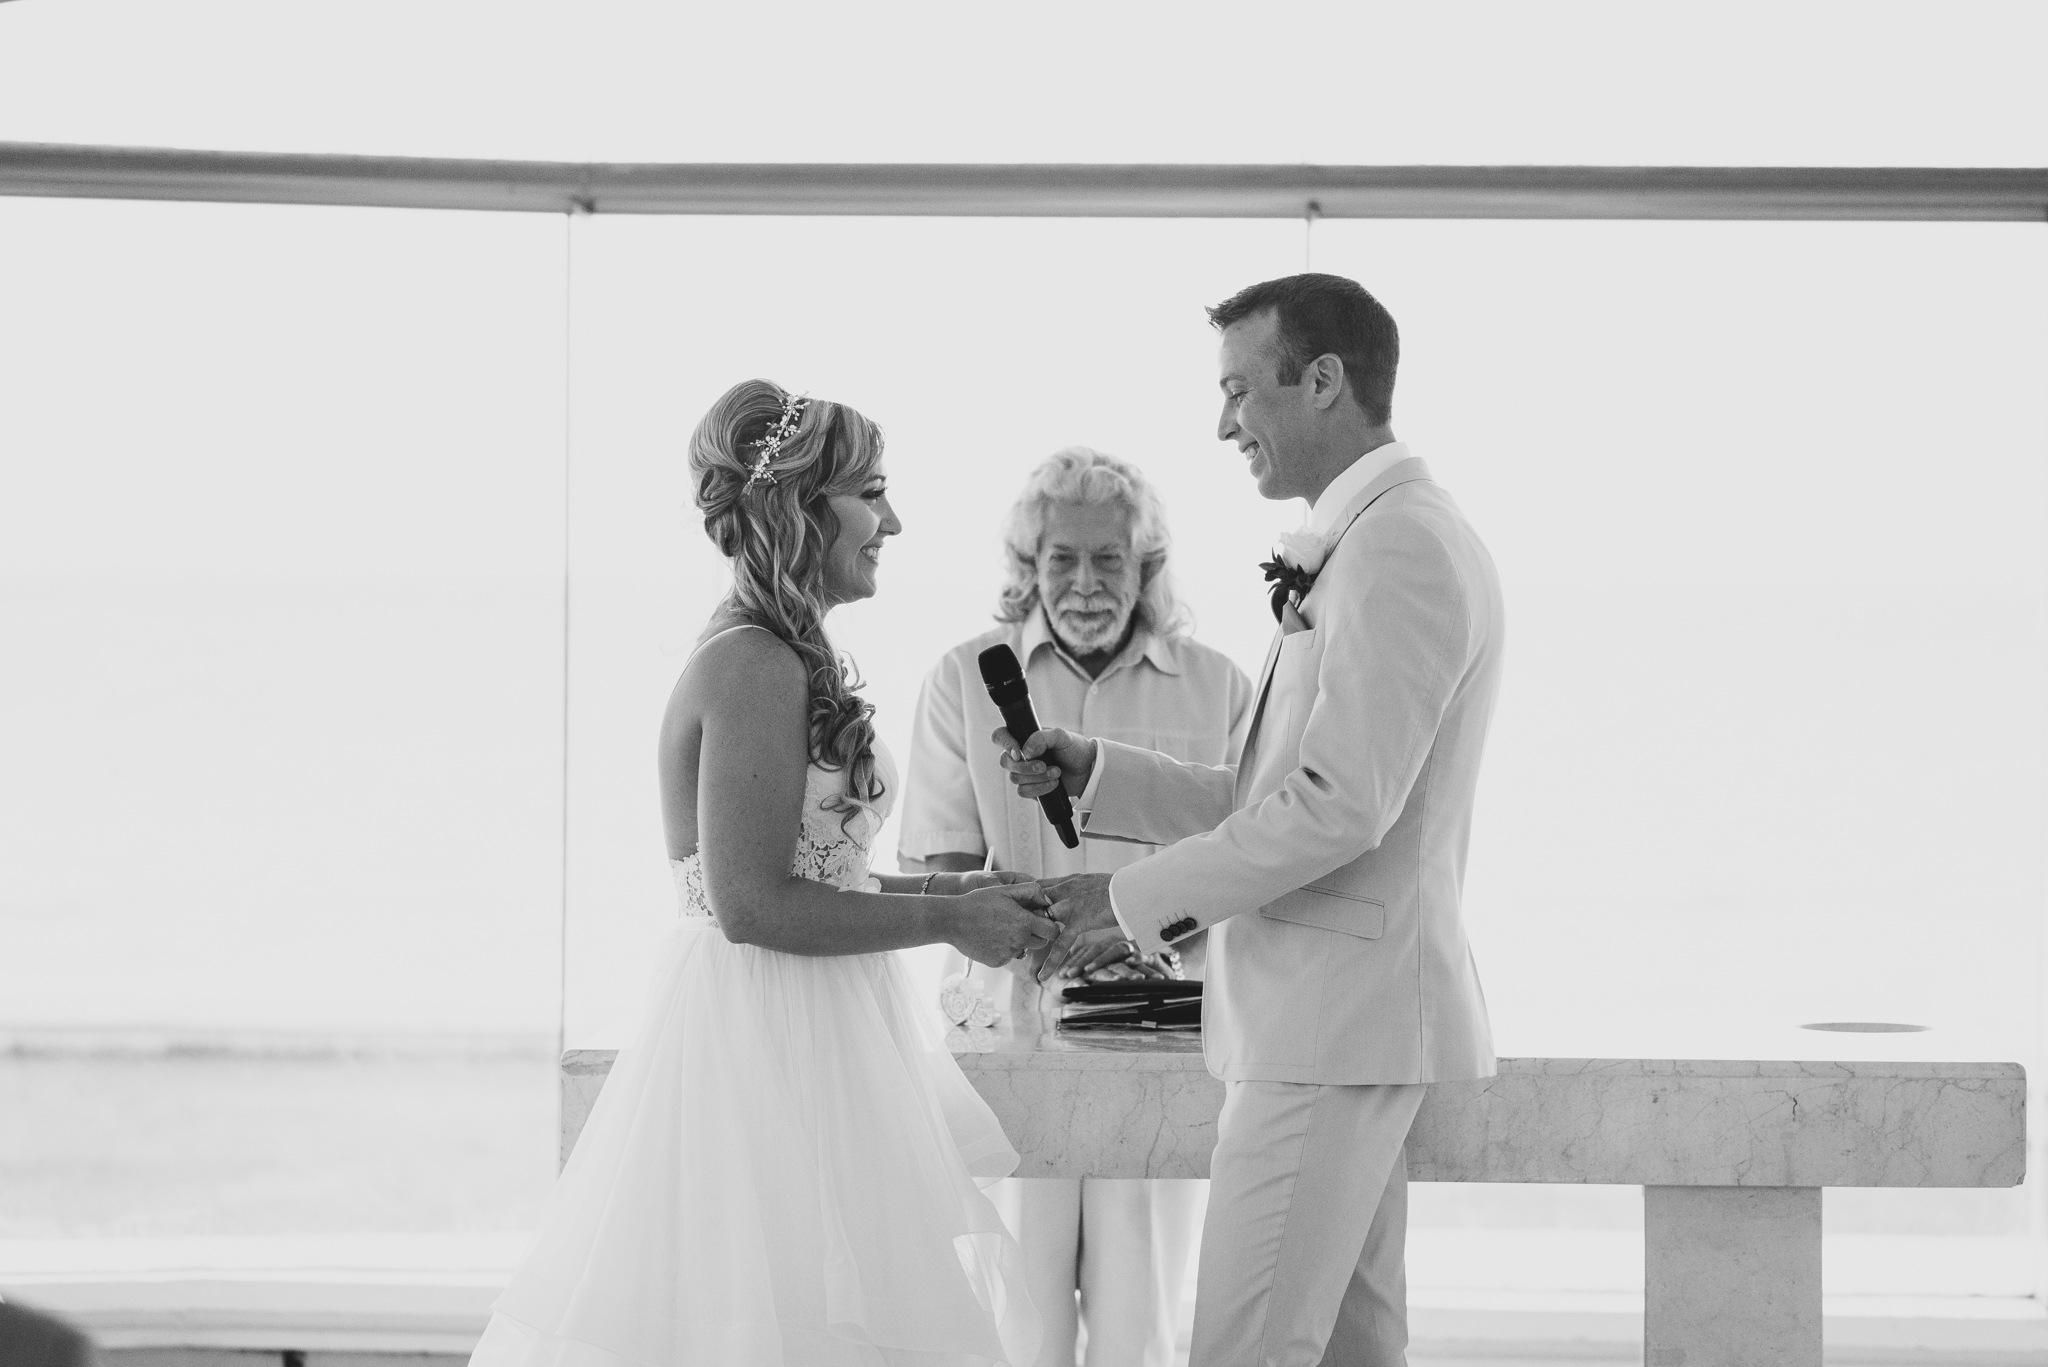 love-and-be-loved-photography-destination-wedding-photographer-cancun-mexico-jessica-jon-image-picture-photo-68.jpg